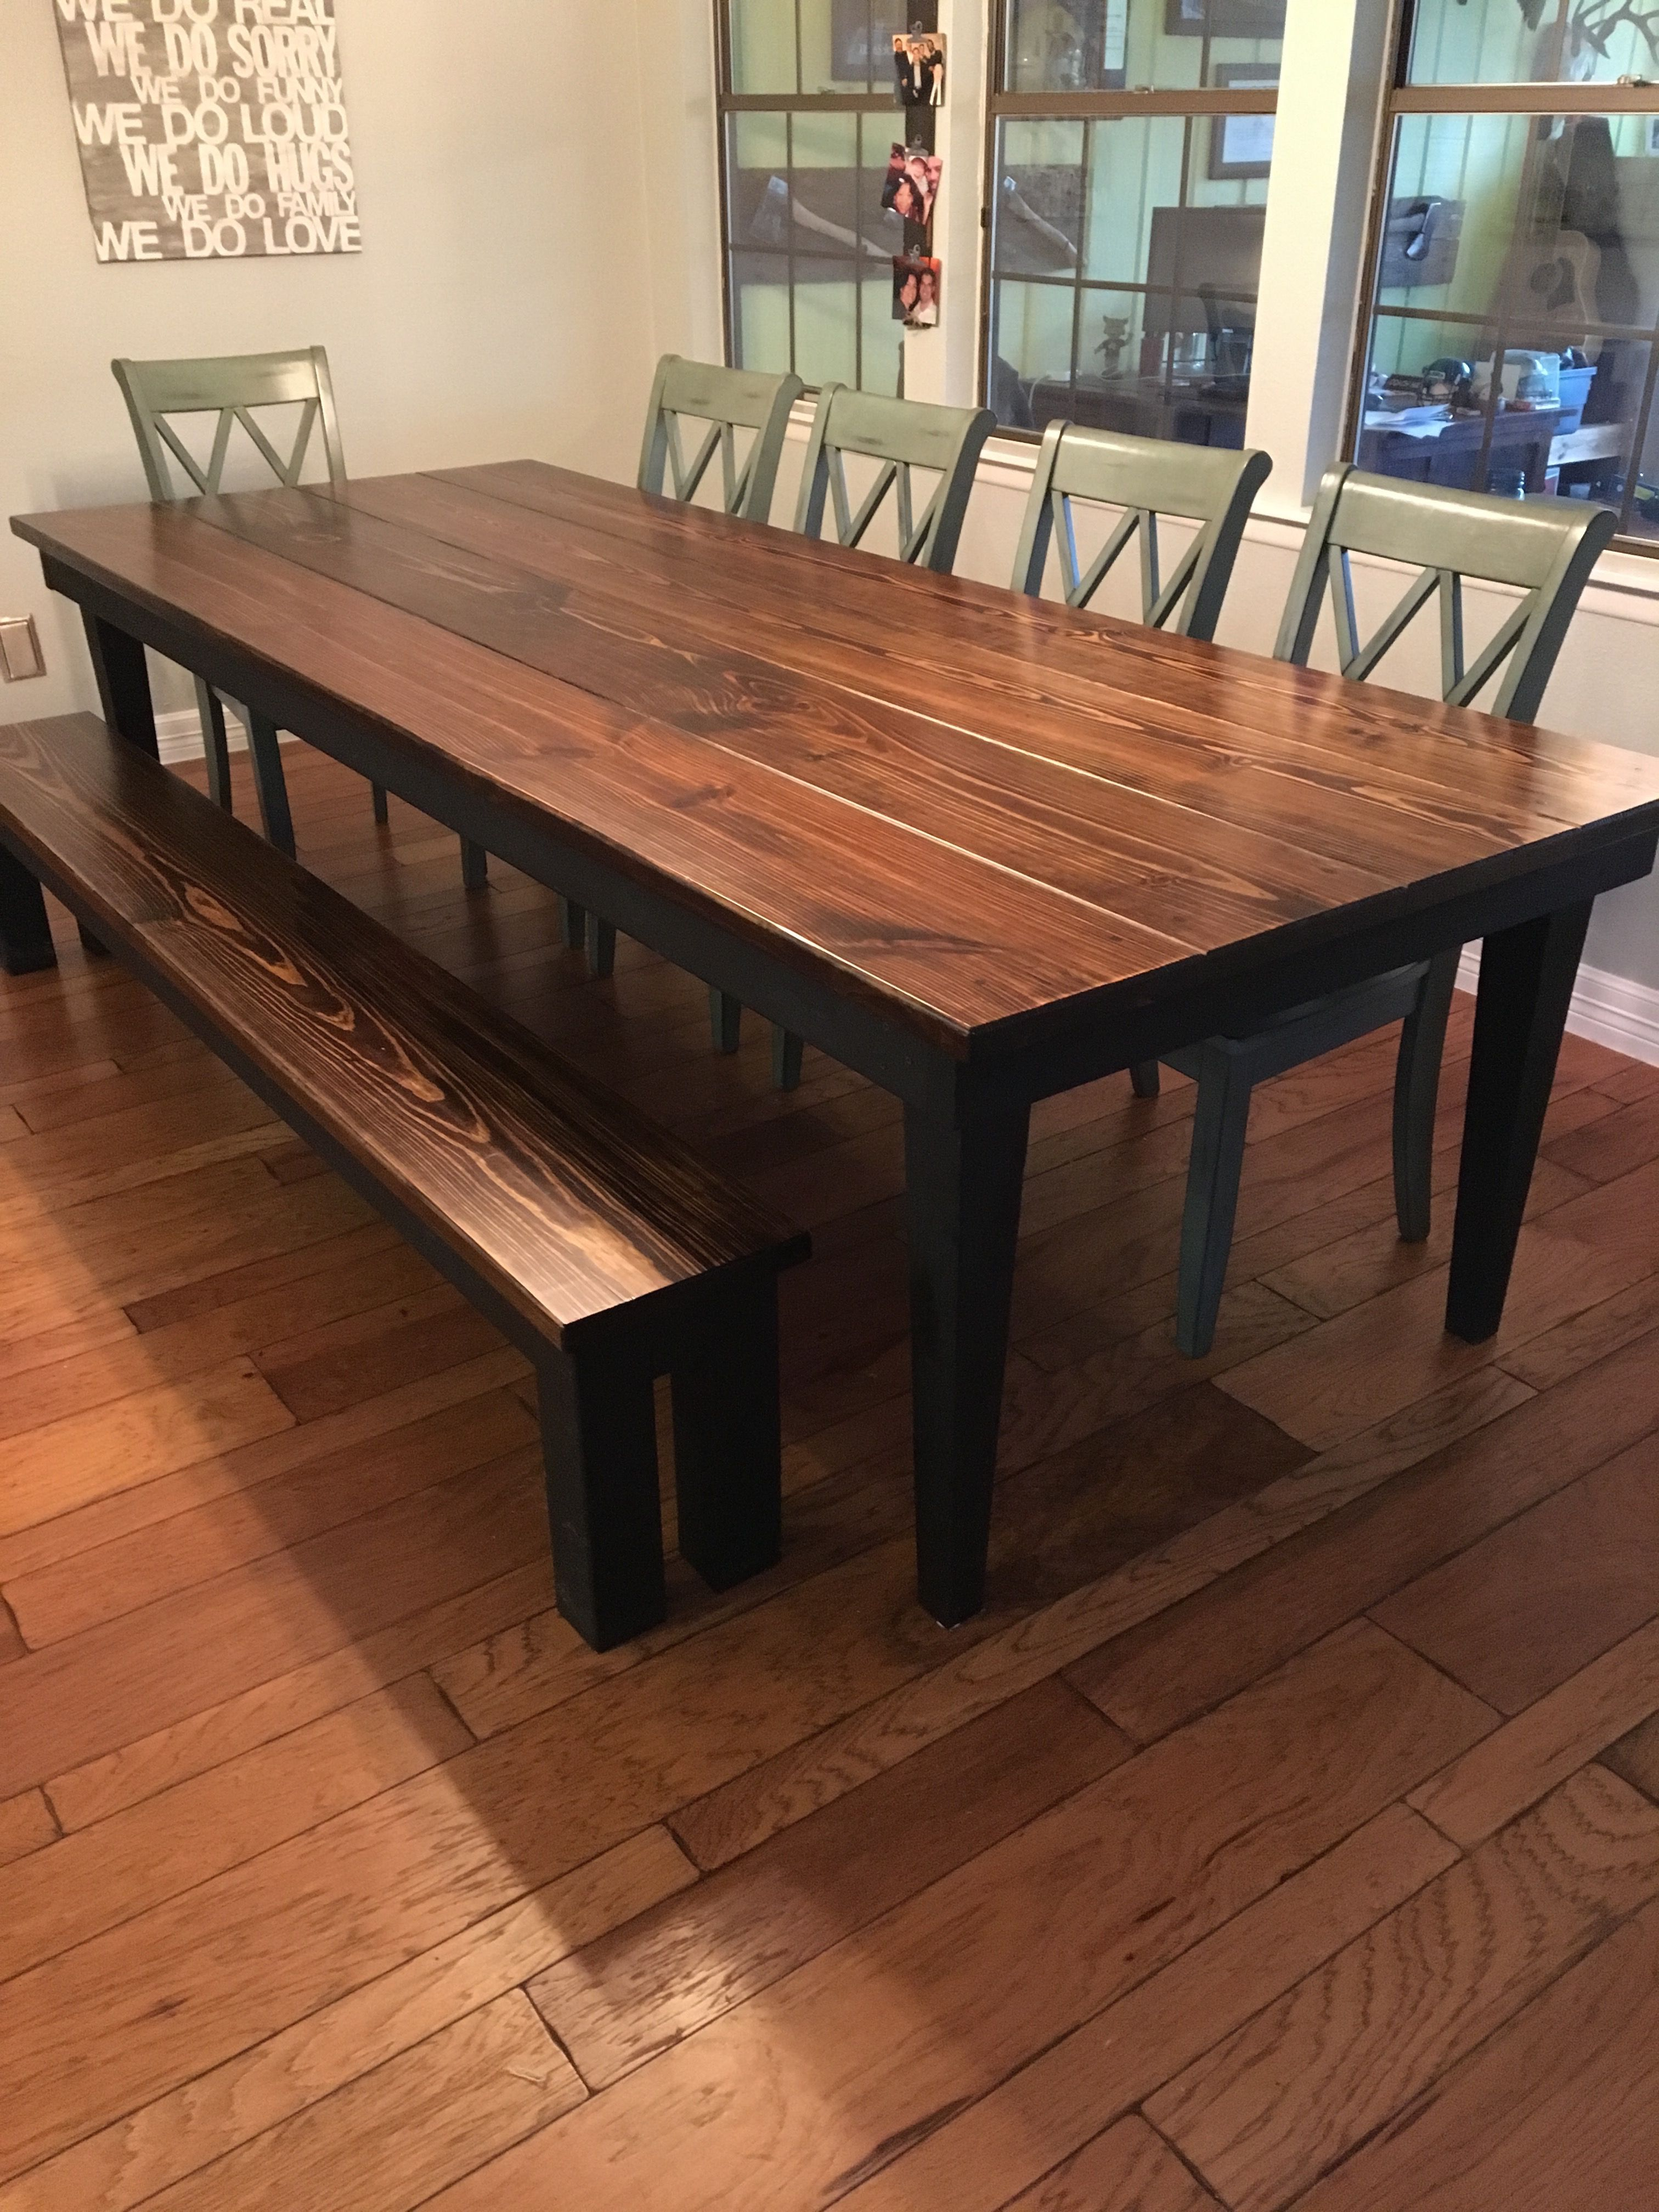 """James+James 9' x42"""" Farmhouse Table with a traditional top ..."""